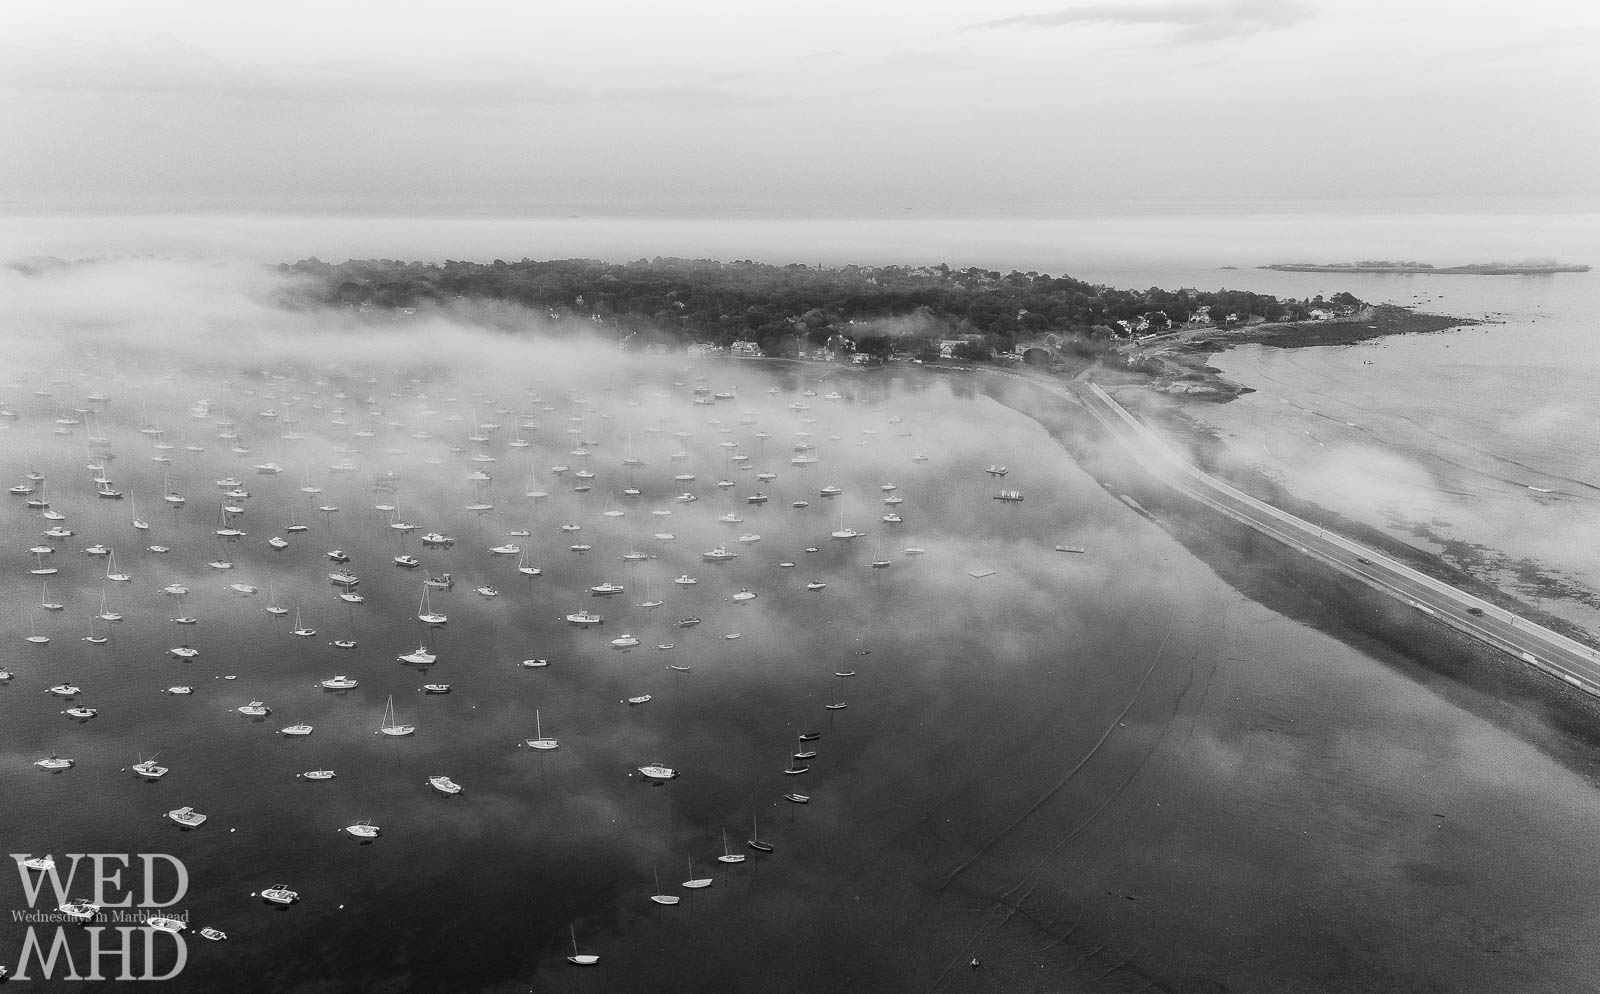 Flying high abover Riverhead Beach reveals this view of fog on the harbor filled with boats and the Neck stretching out beyond